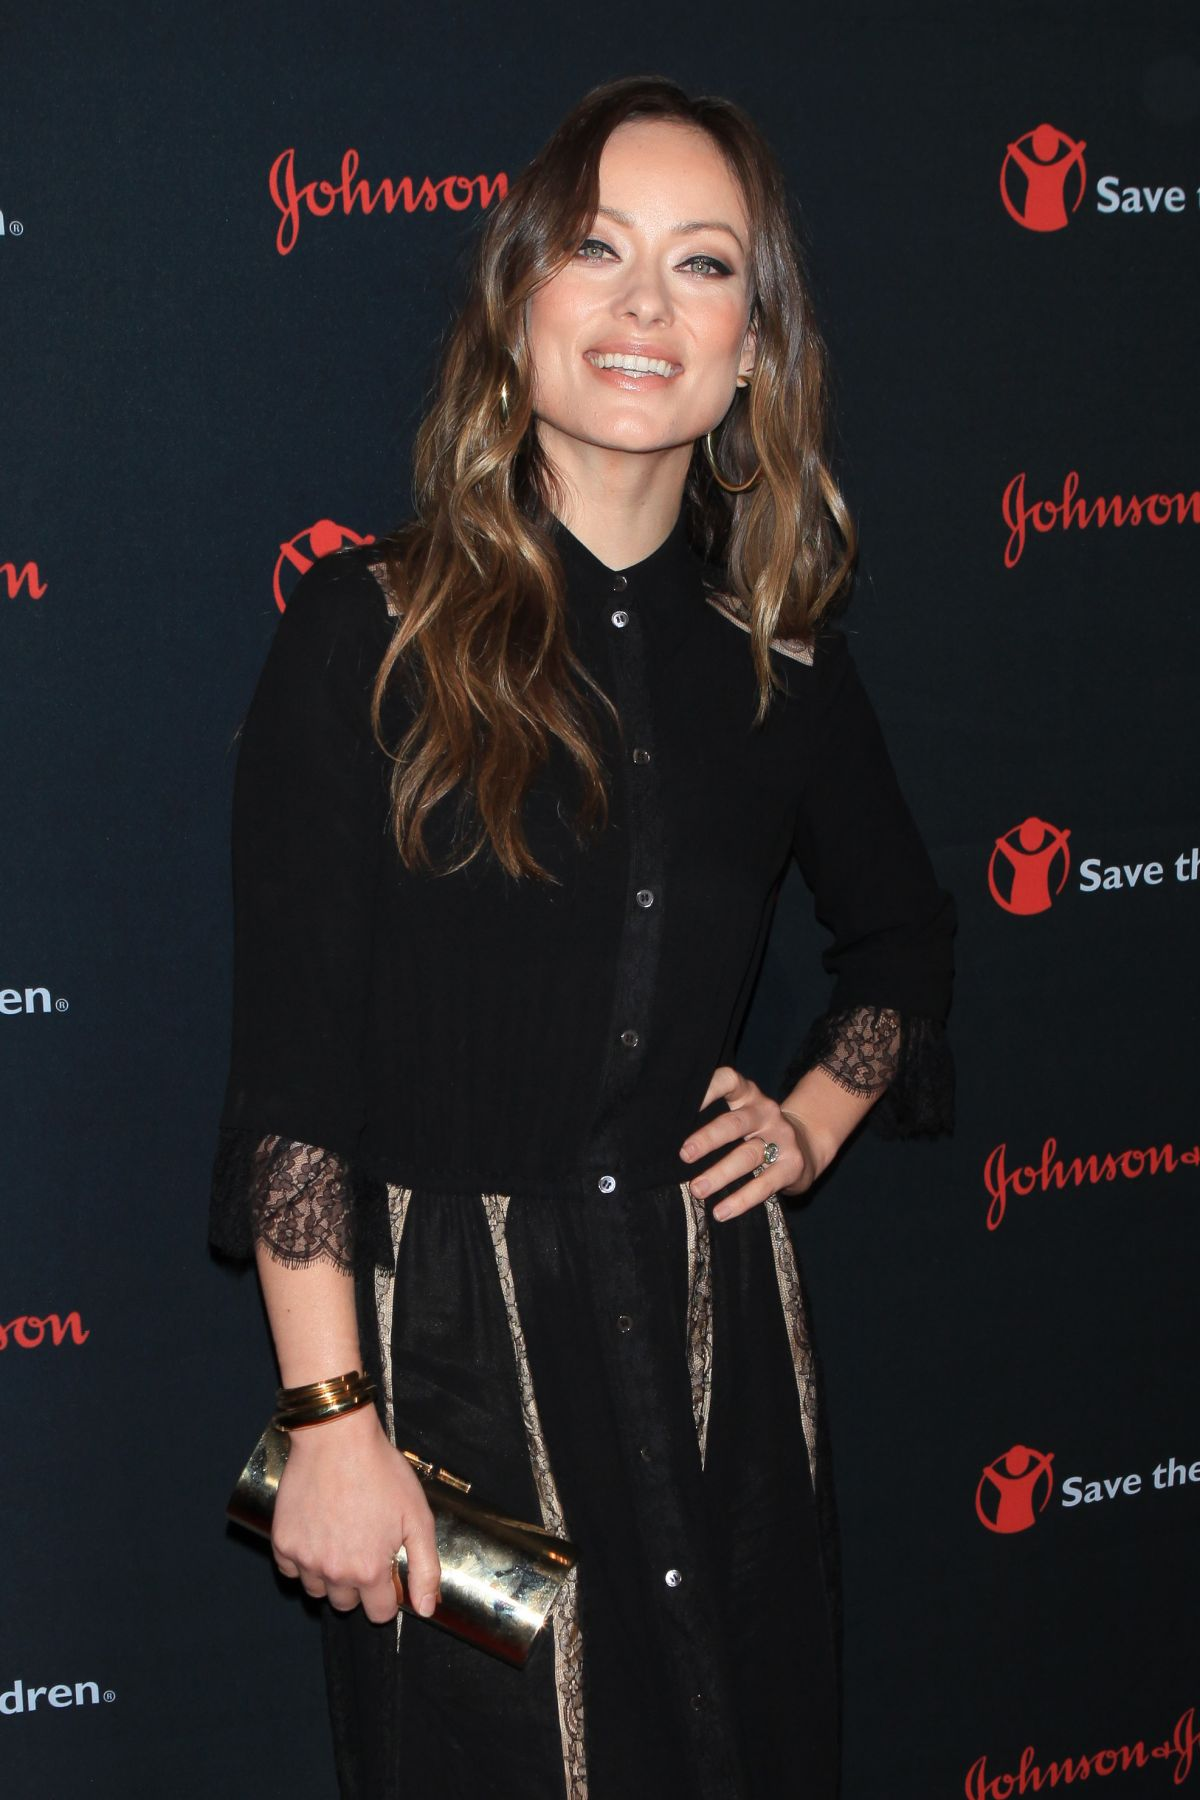 OLIVIA WILDE at 3rd Annual Save the Children Illumination Gala in New York 11/17/2015